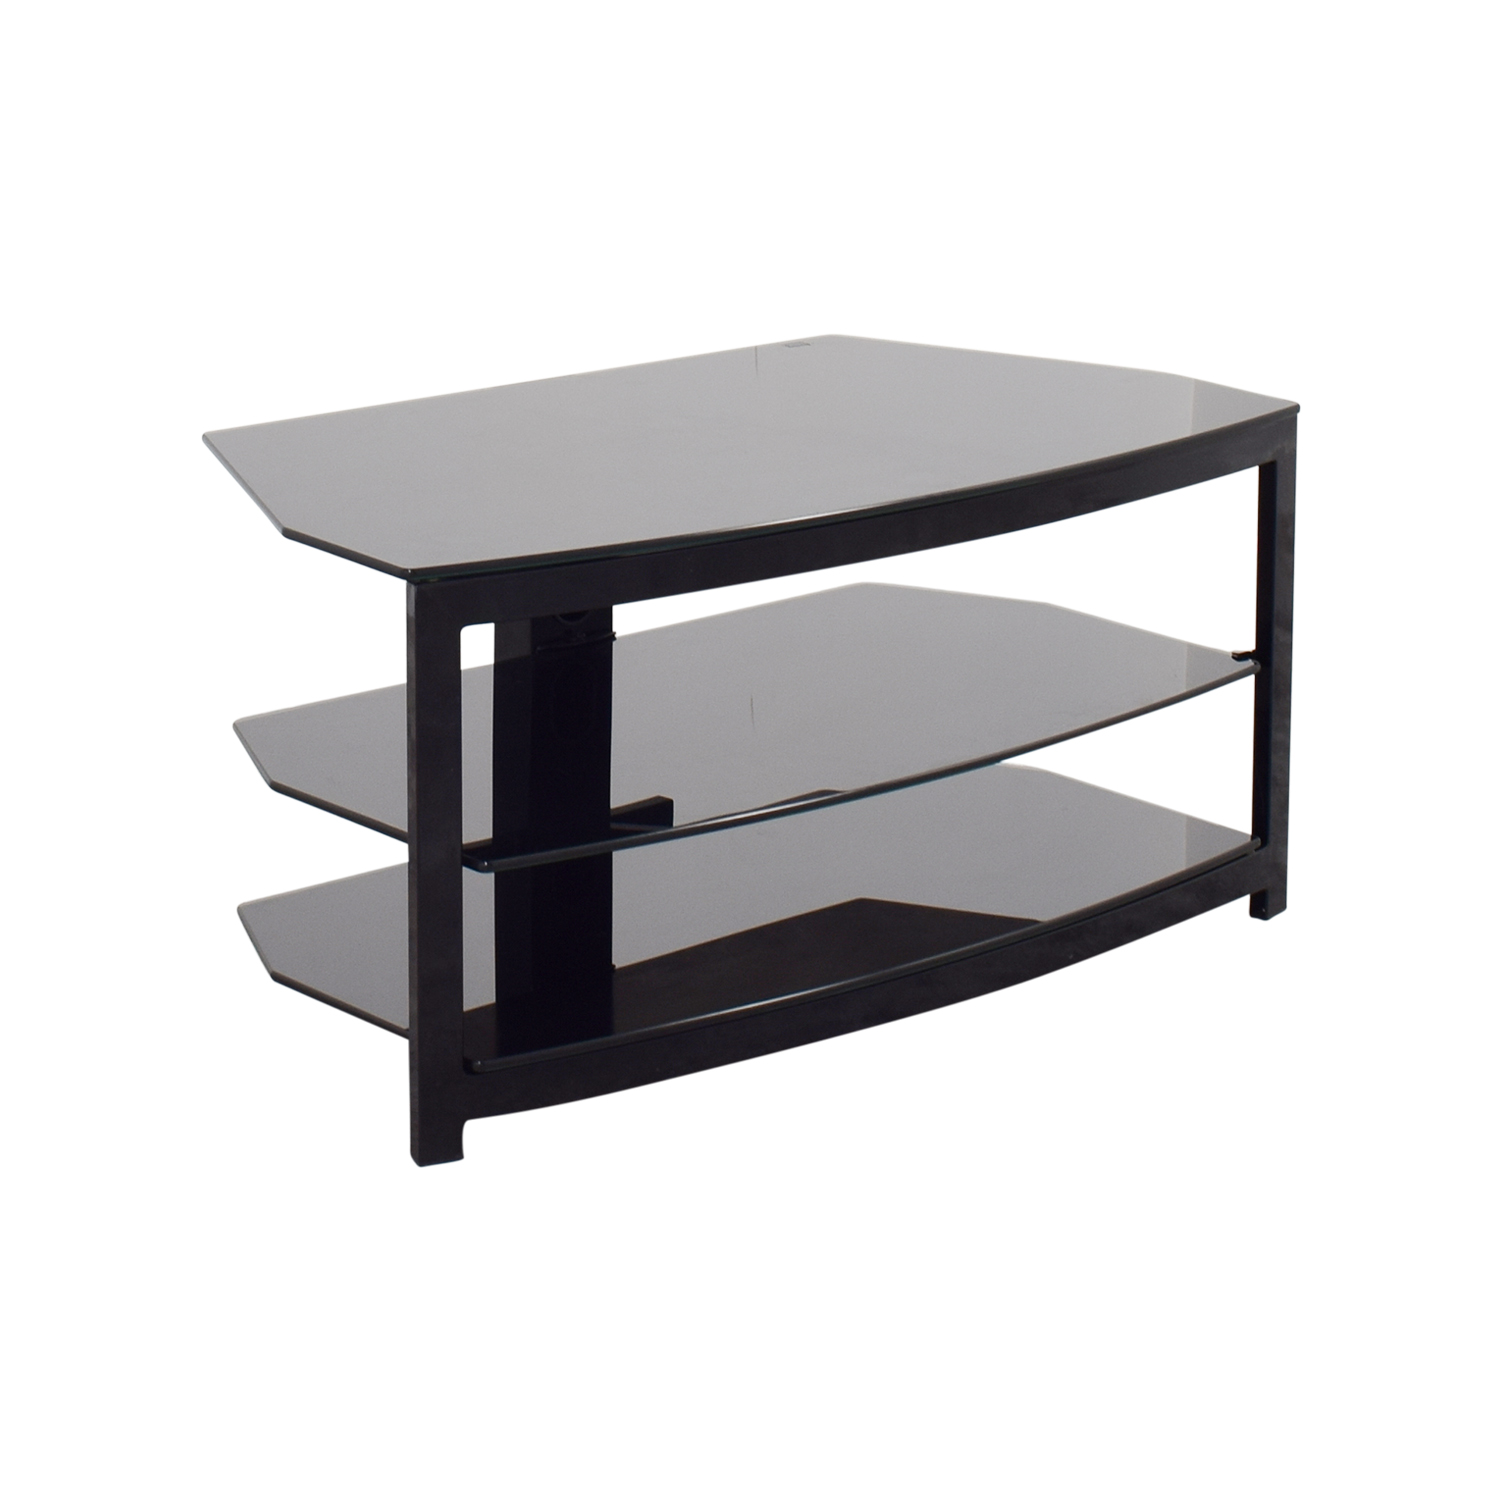 75 Off Black Glass Tv Stand Storage